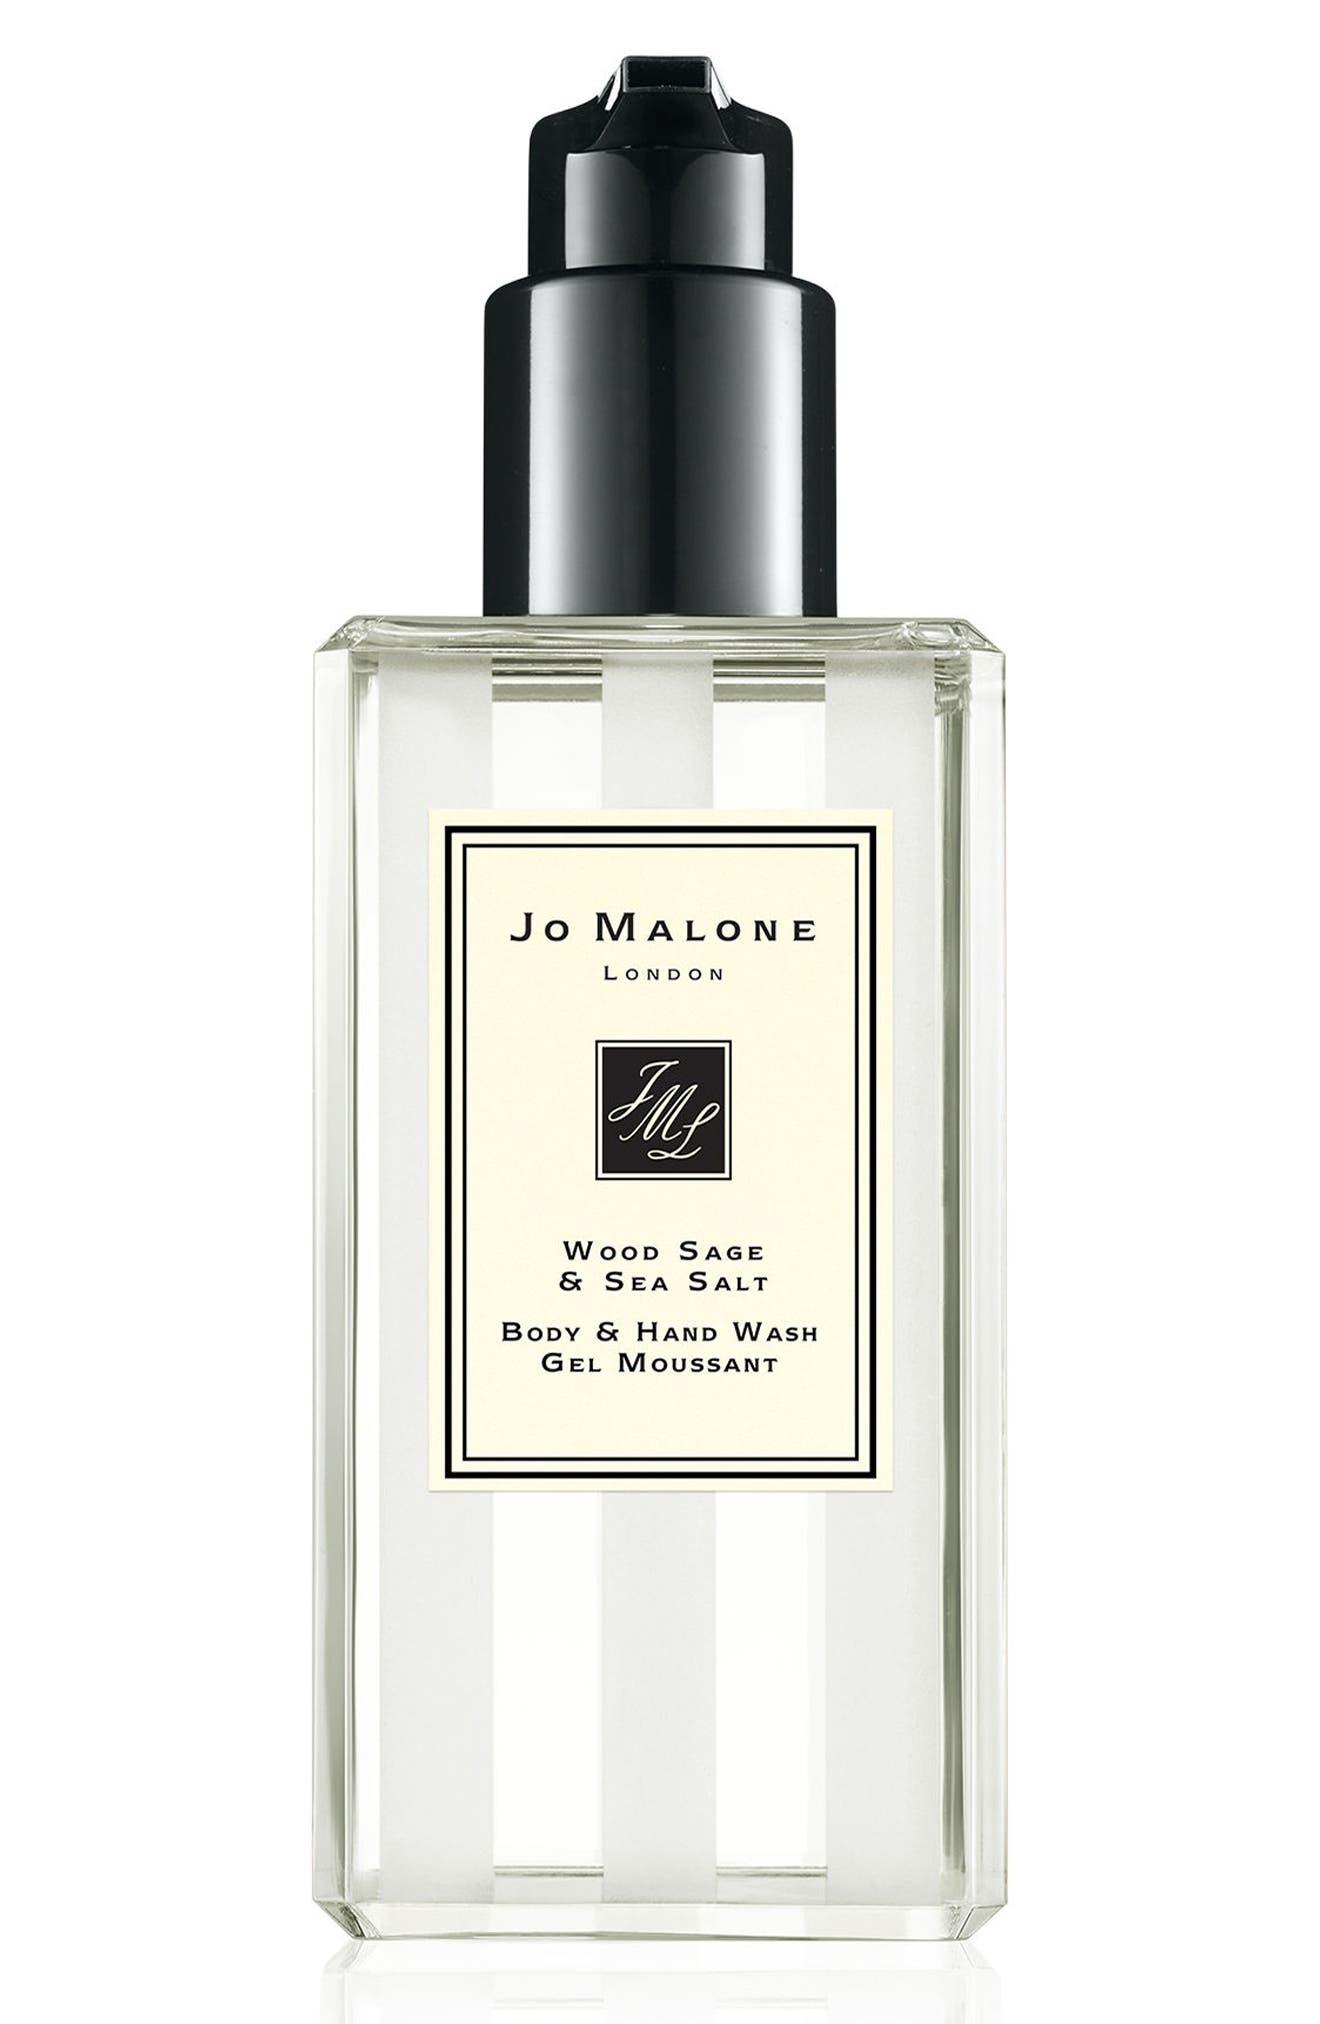 Jo Malone London™ Wood Sage & Sea Salt Body & Hand Wash